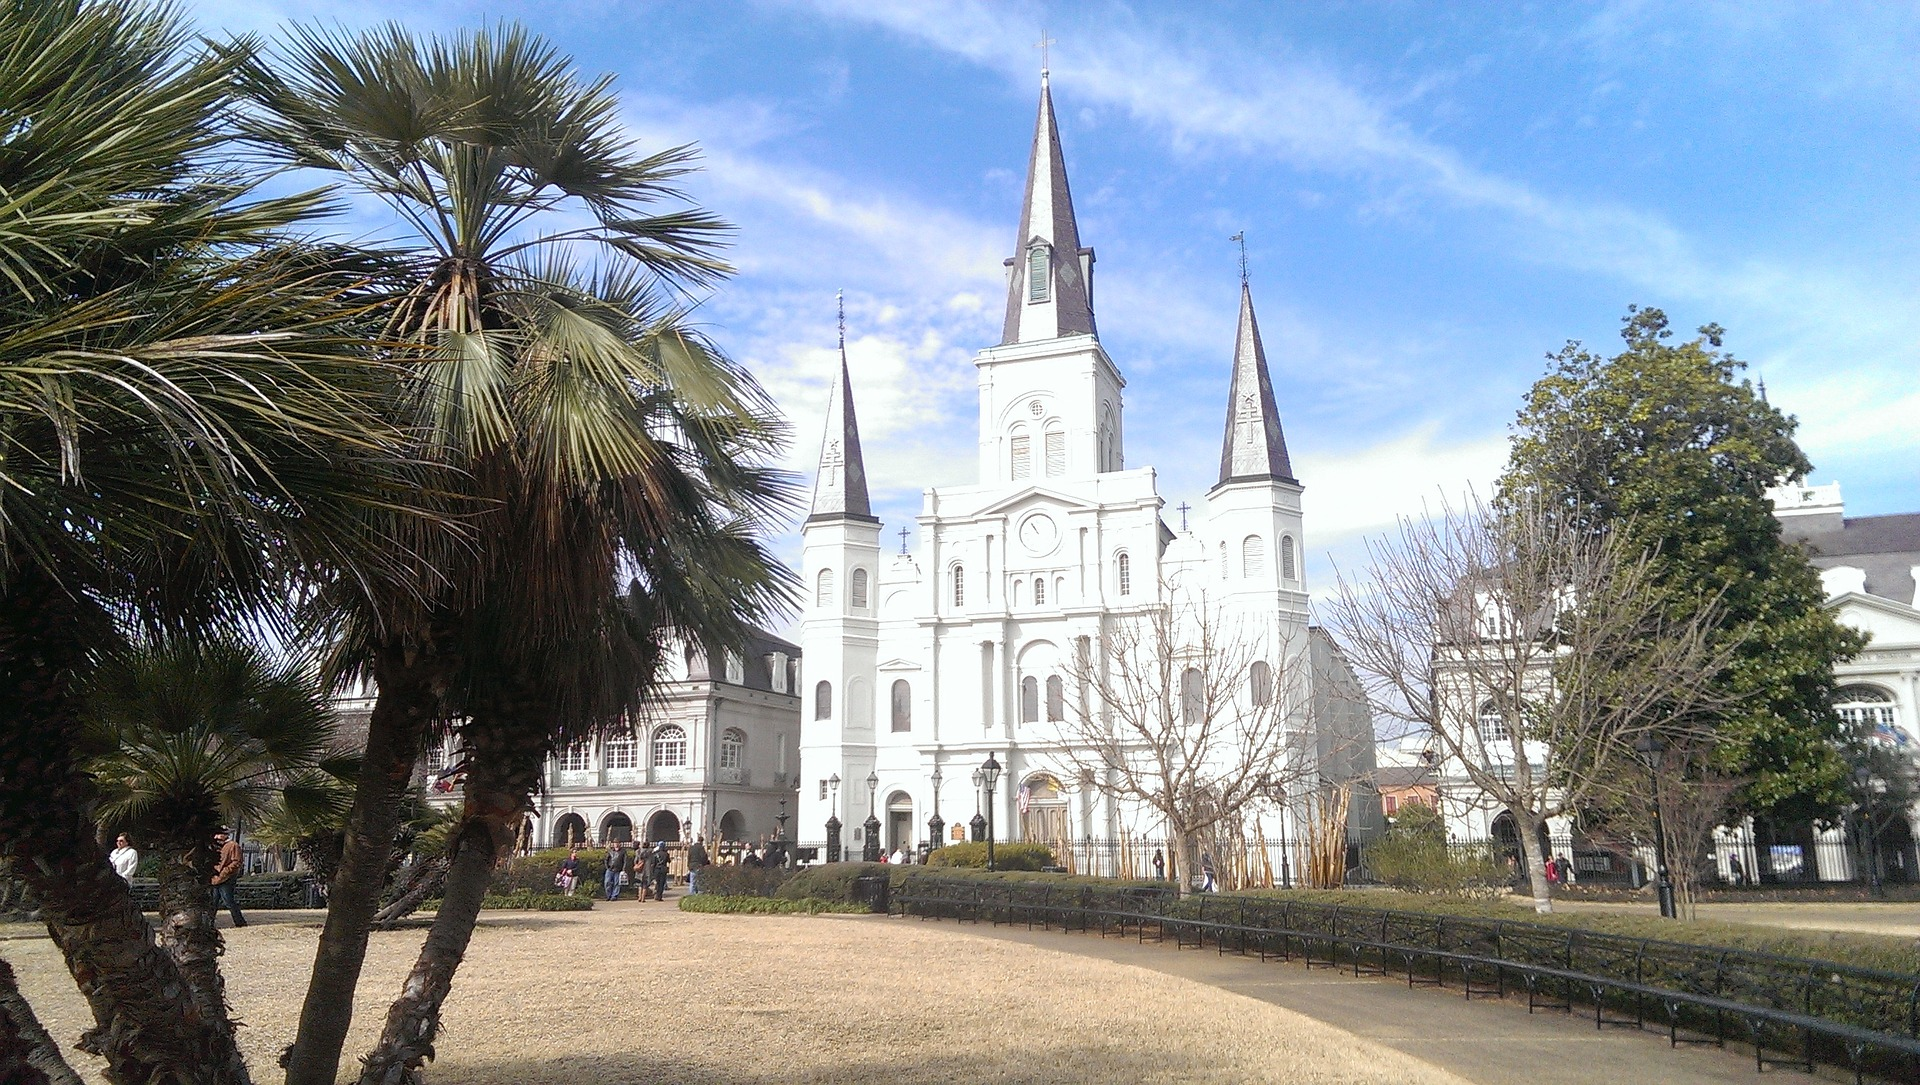 Image from blog post Leading New Zealand Tourism Marketing Company Opens Office in New Orleans